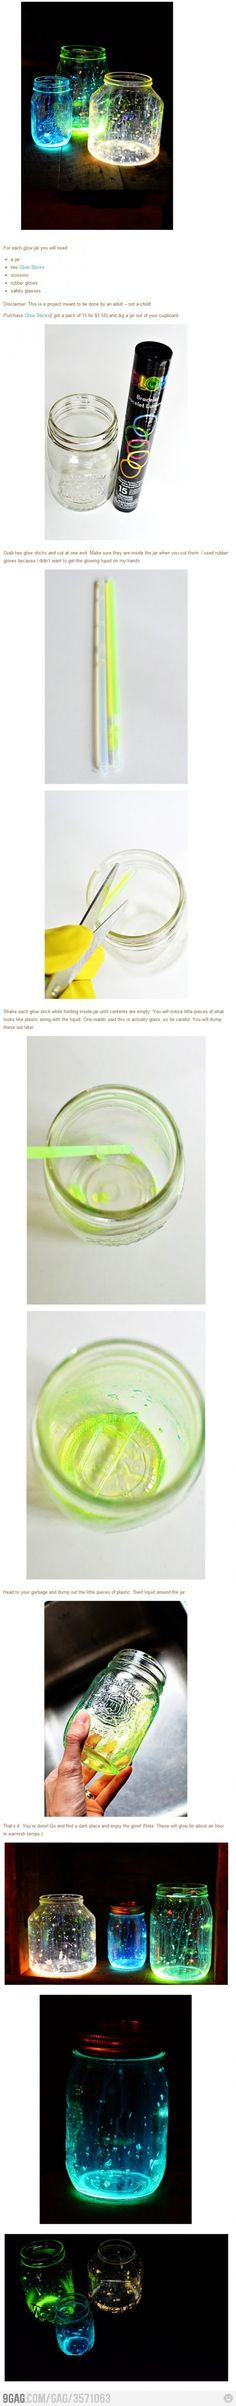 DIY Glow in the Dark Jars